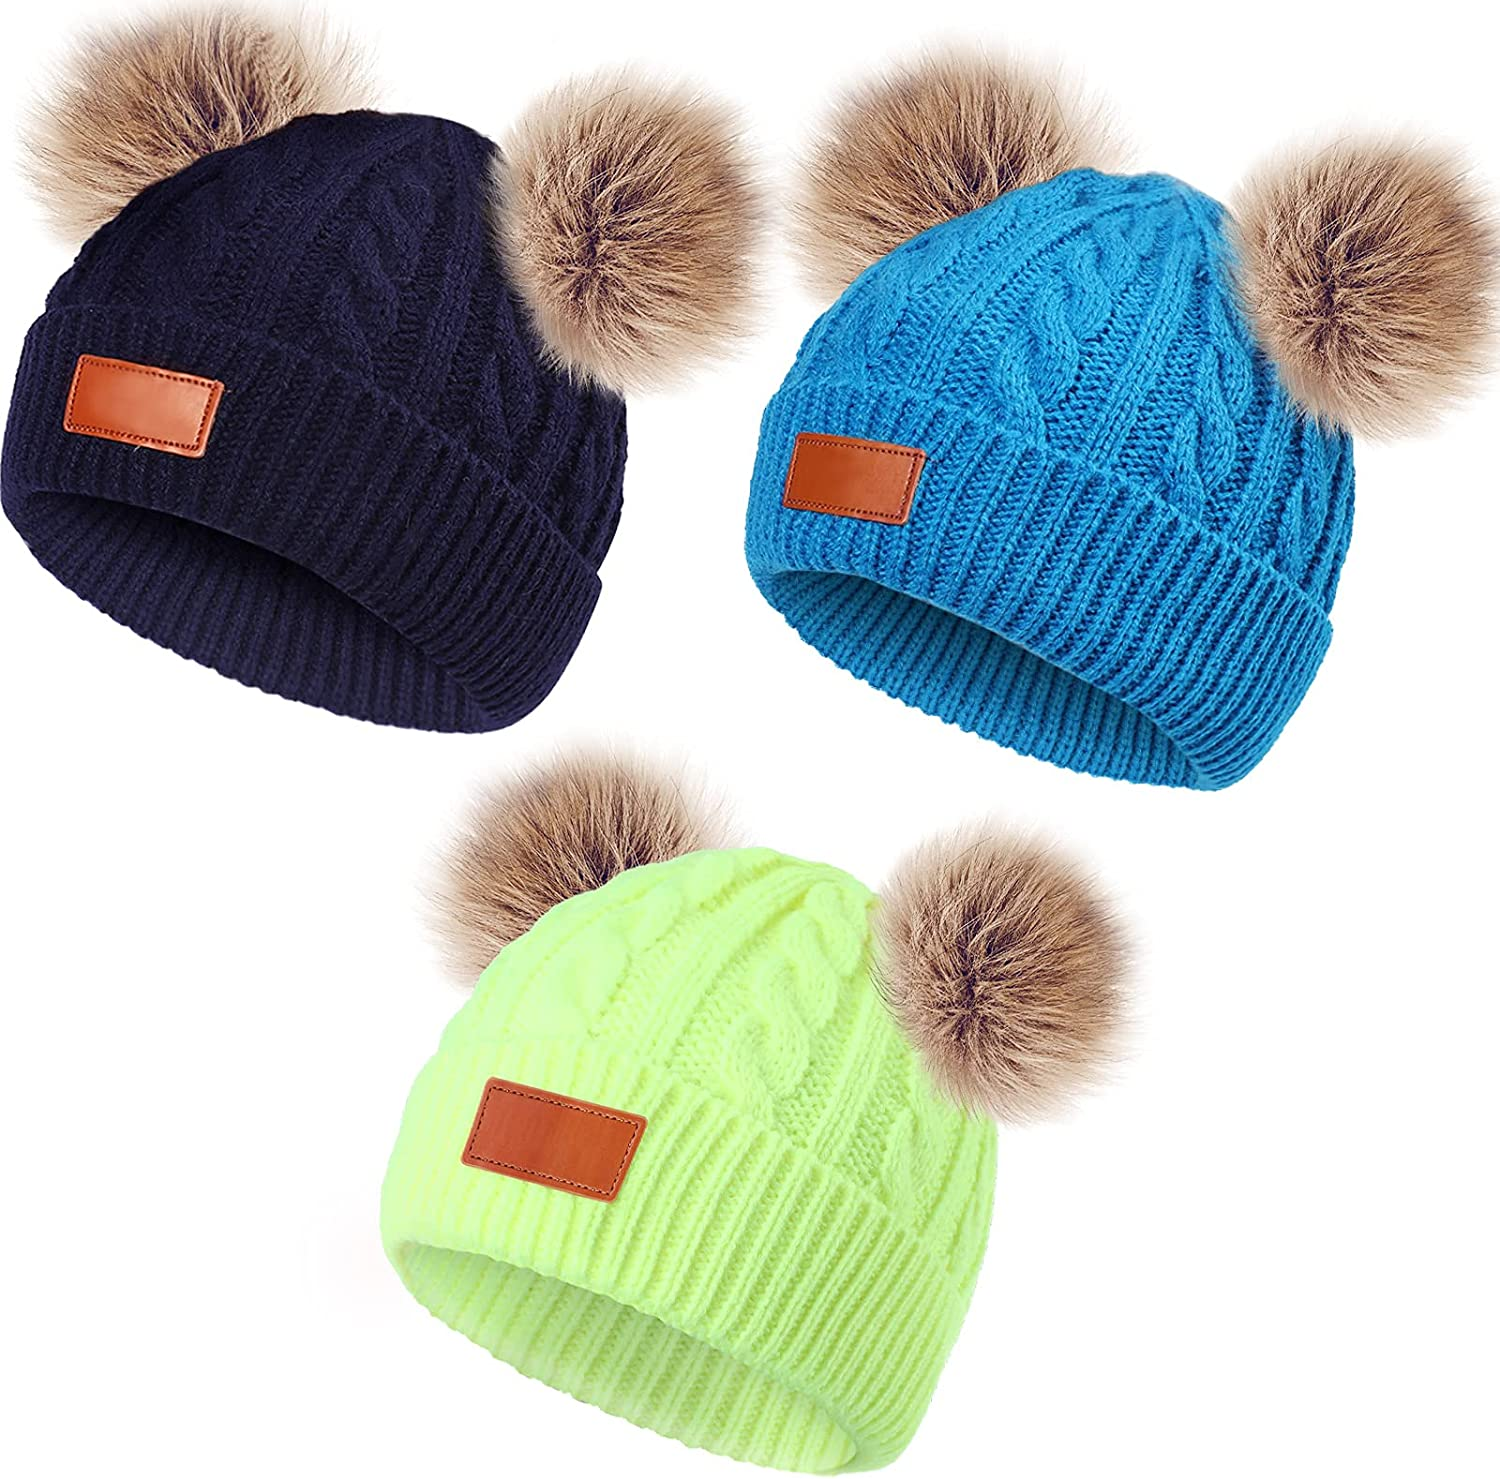 3 Pieces Kids Winter Pompom Hat Knitted Ski Beanie Hat Double Pom Beanie Cap for Girls Boys, for 1-3 Years Old